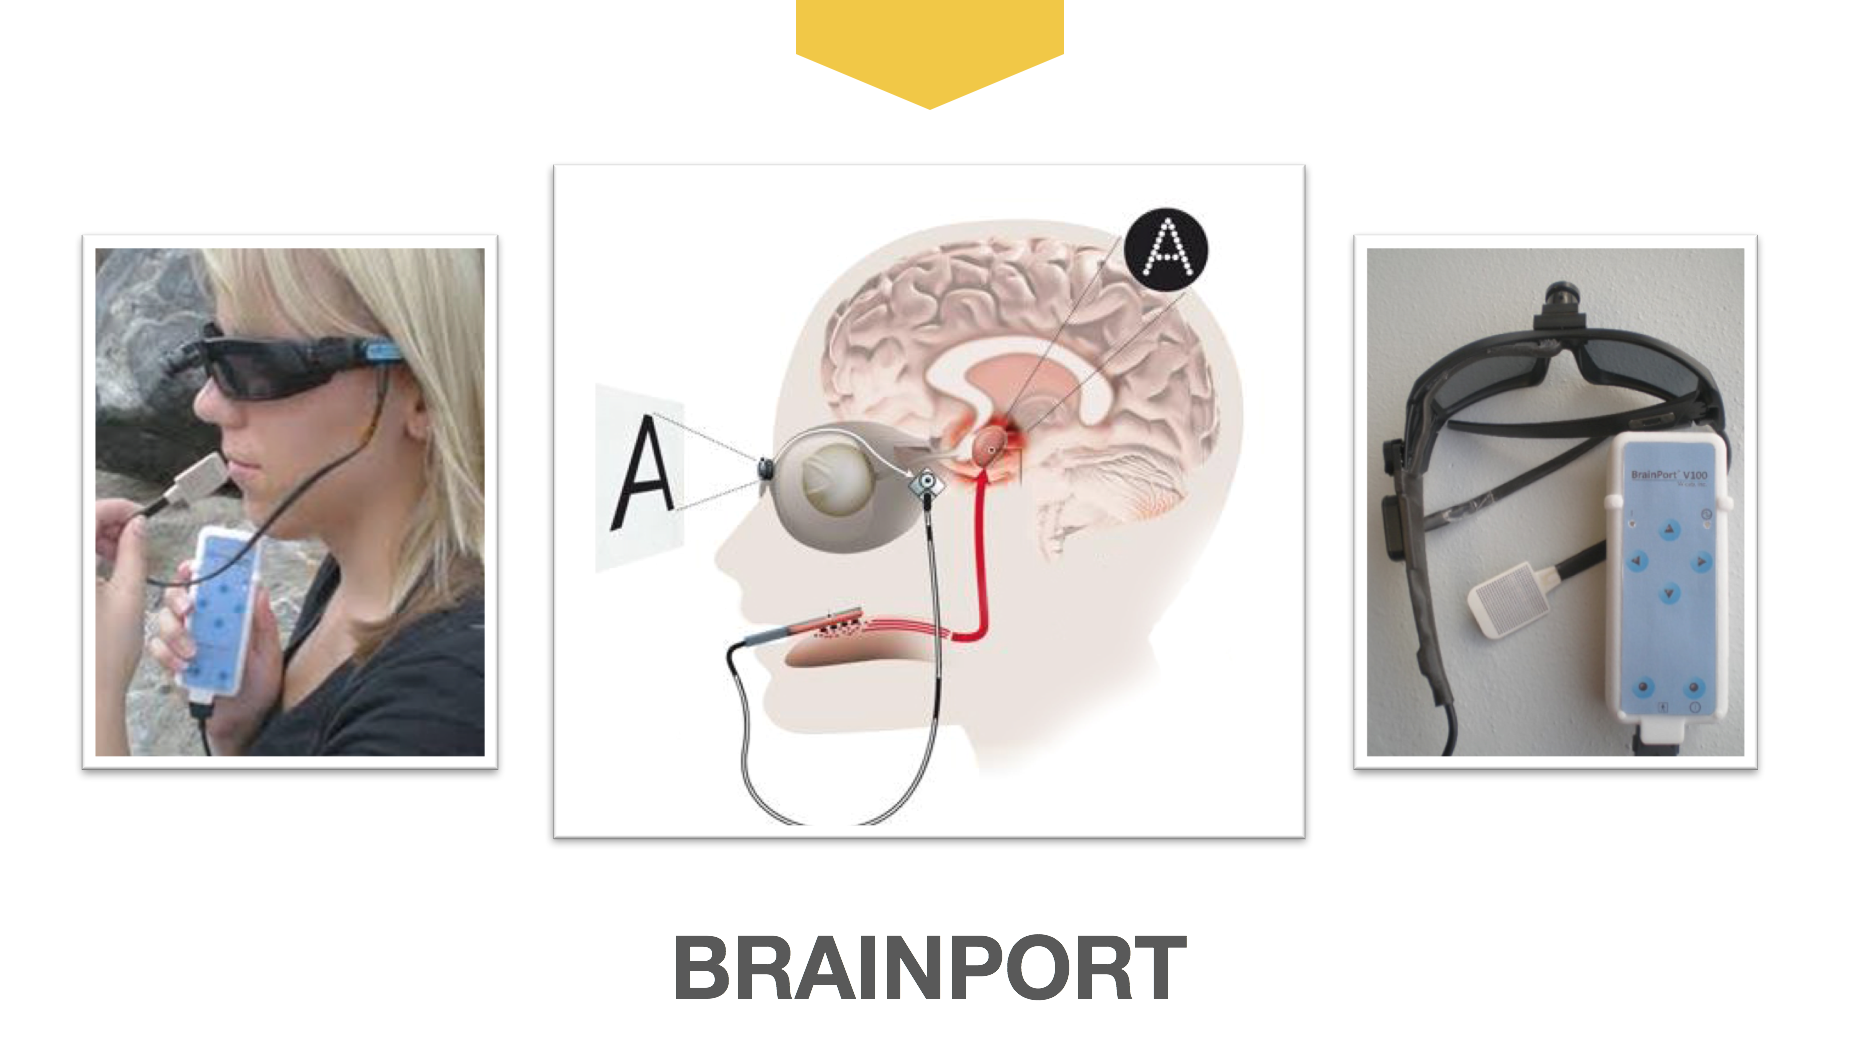 Brainport sensory substitution